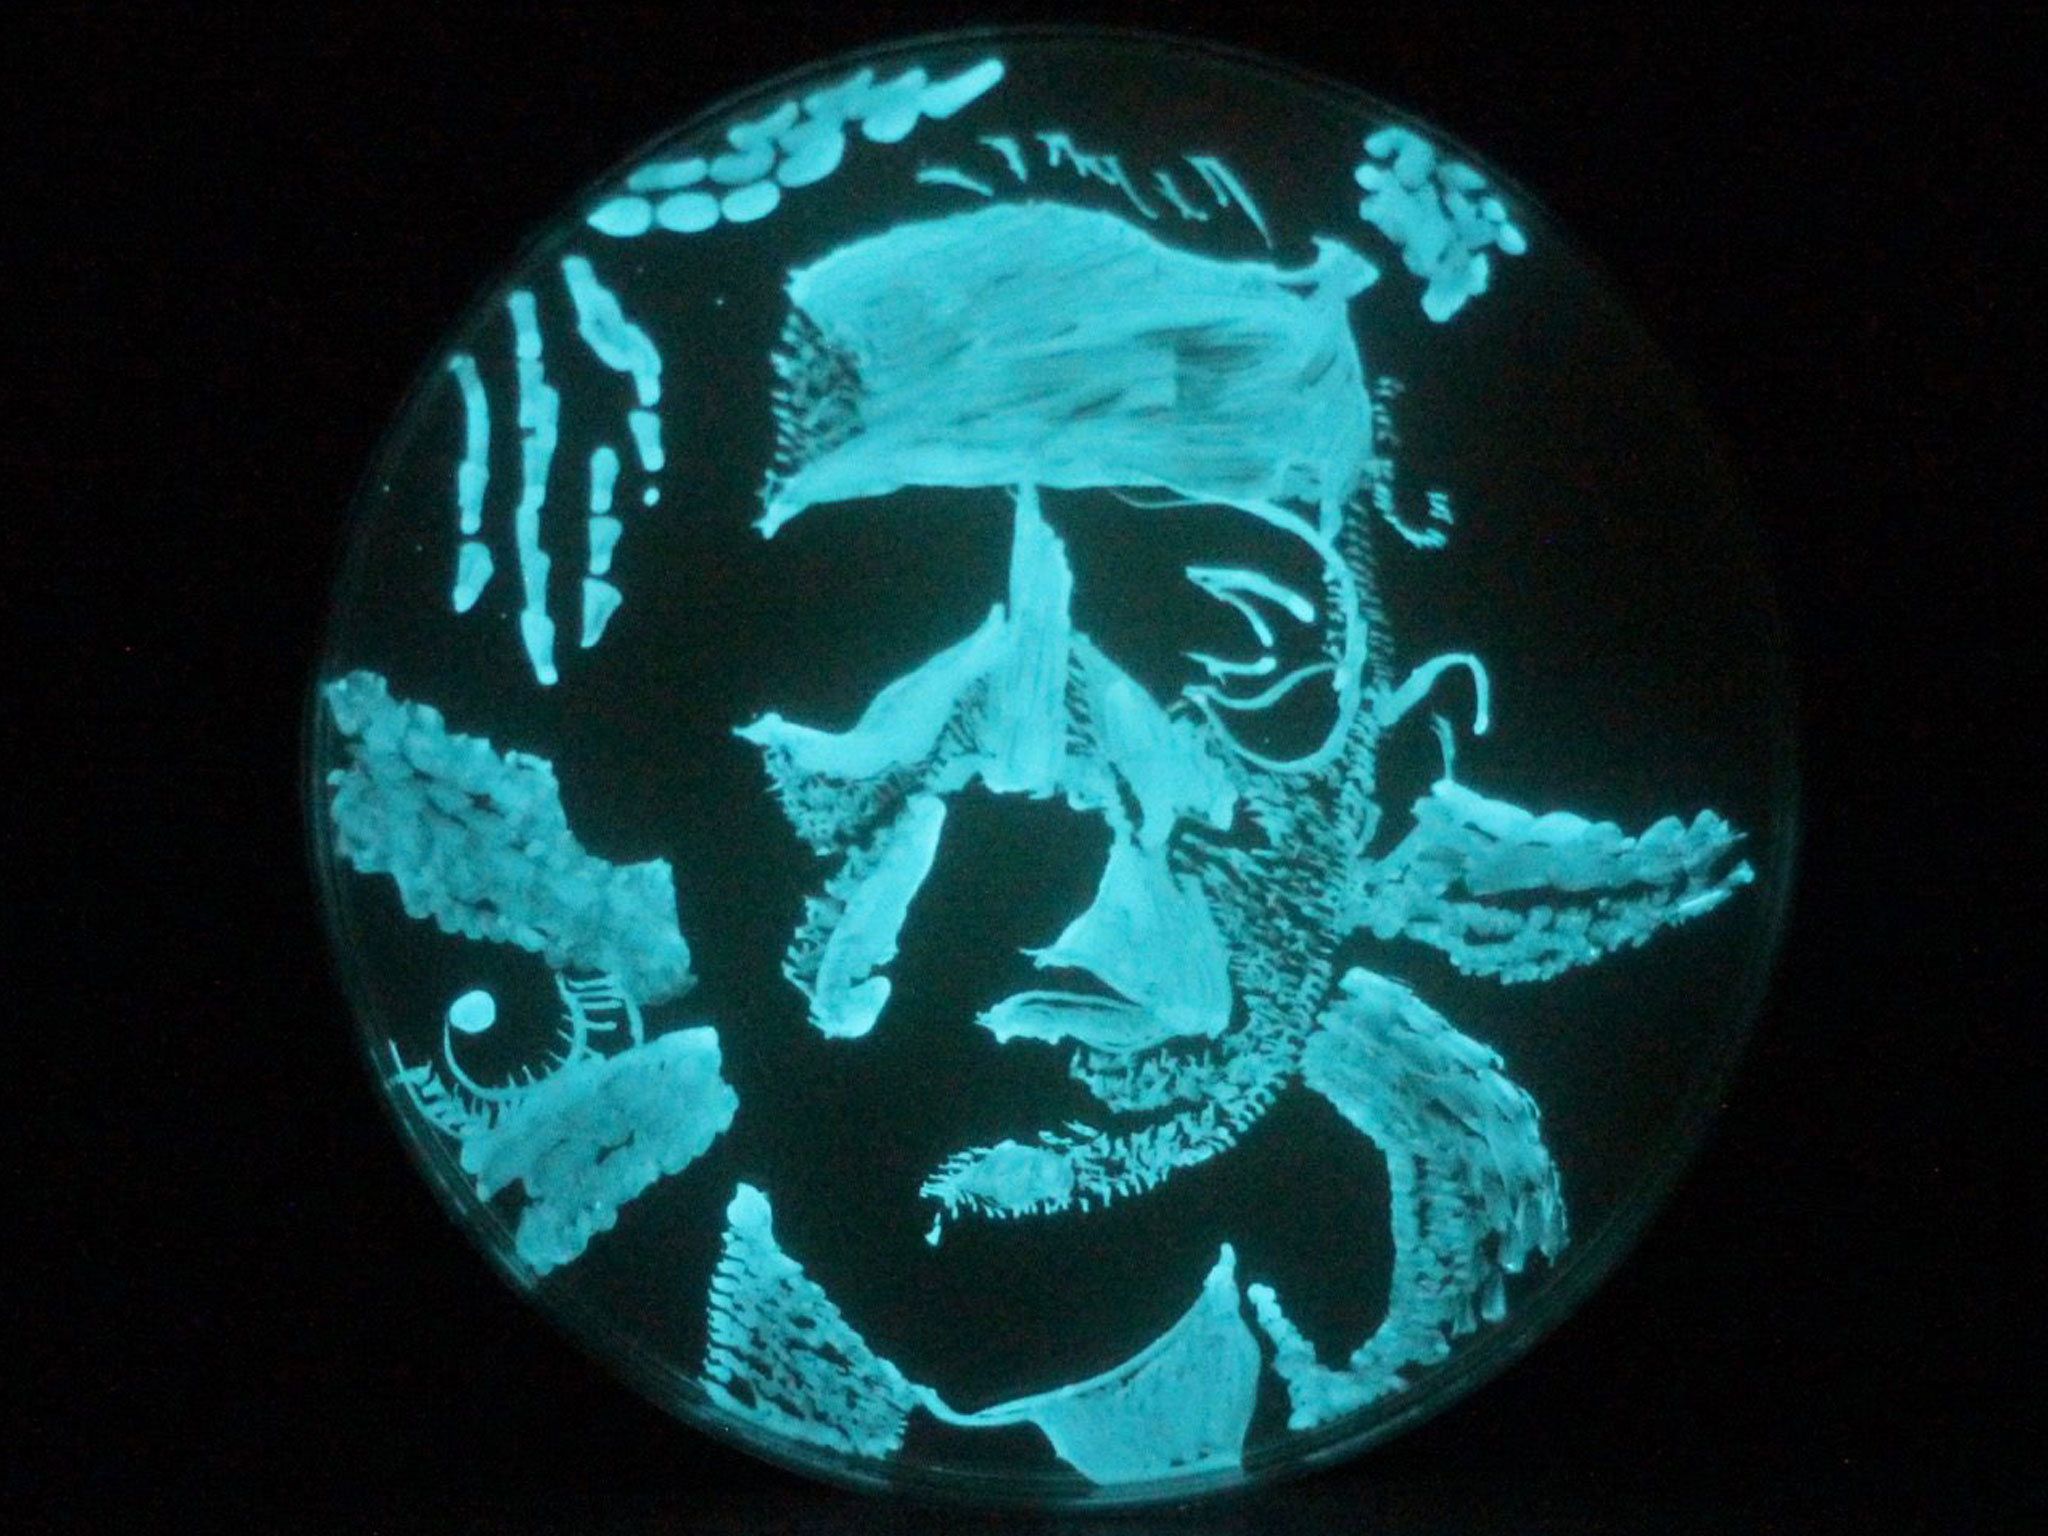 HPL portrait in bacteria